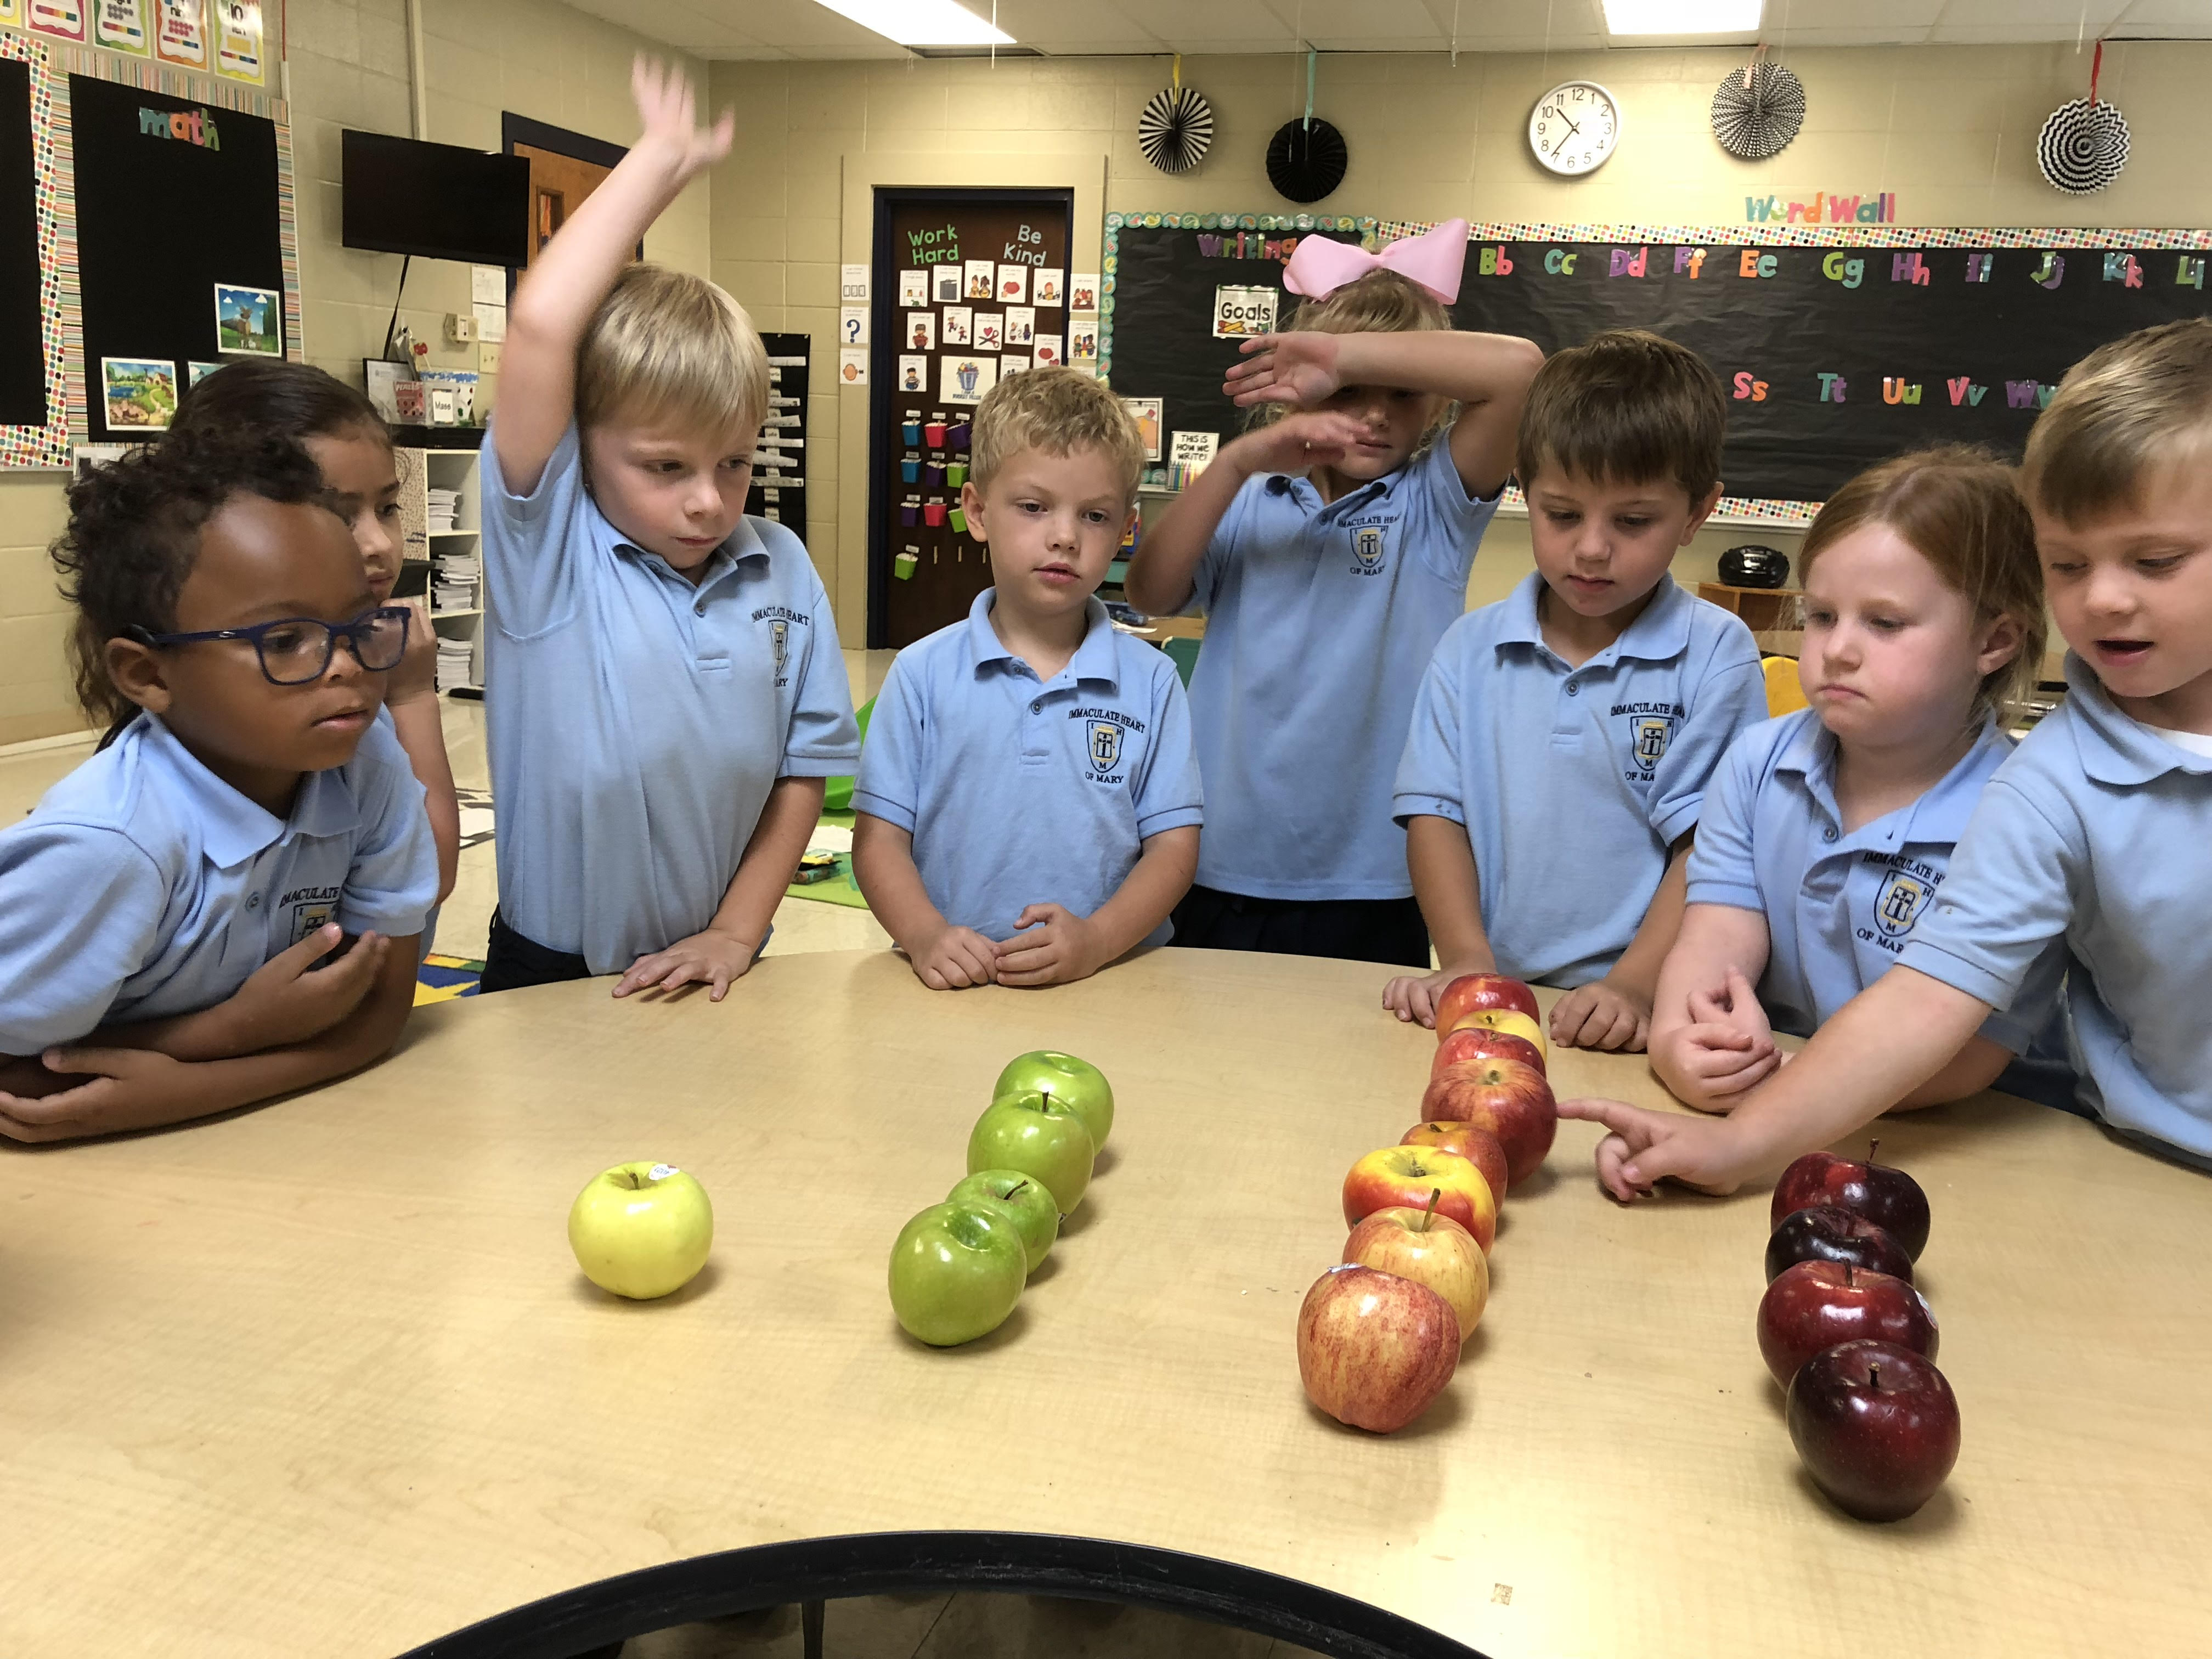 A group of students counting with apples